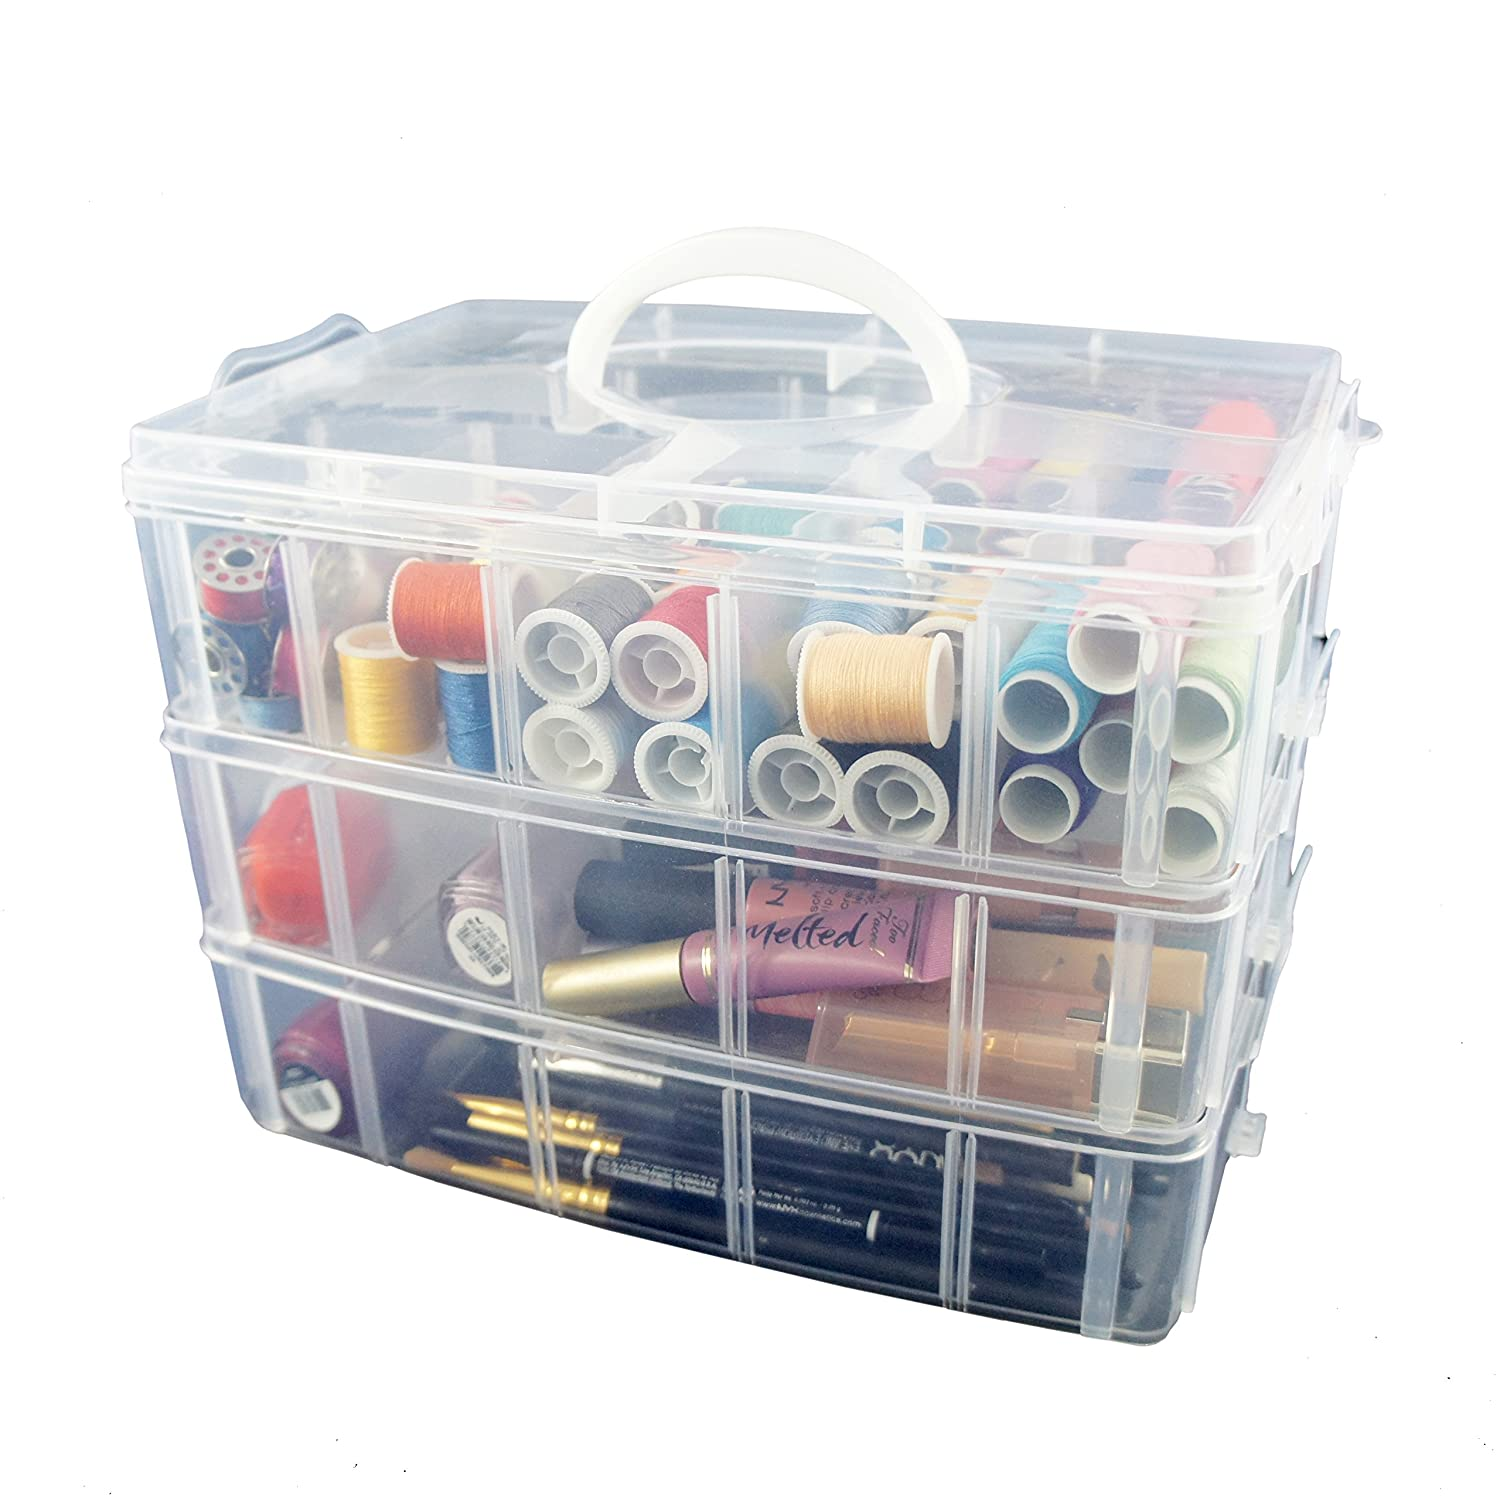 Amazon.com Bins u0026 Things Storage Container with 30 Adjustable Compartments for Storing u0026 Organizing Sewing Embroidery Accessories Threads Bobbins Beads ...  sc 1 st  Amazon.com & Amazon.com: Bins u0026 Things Storage Container with 30 Adjustable ...